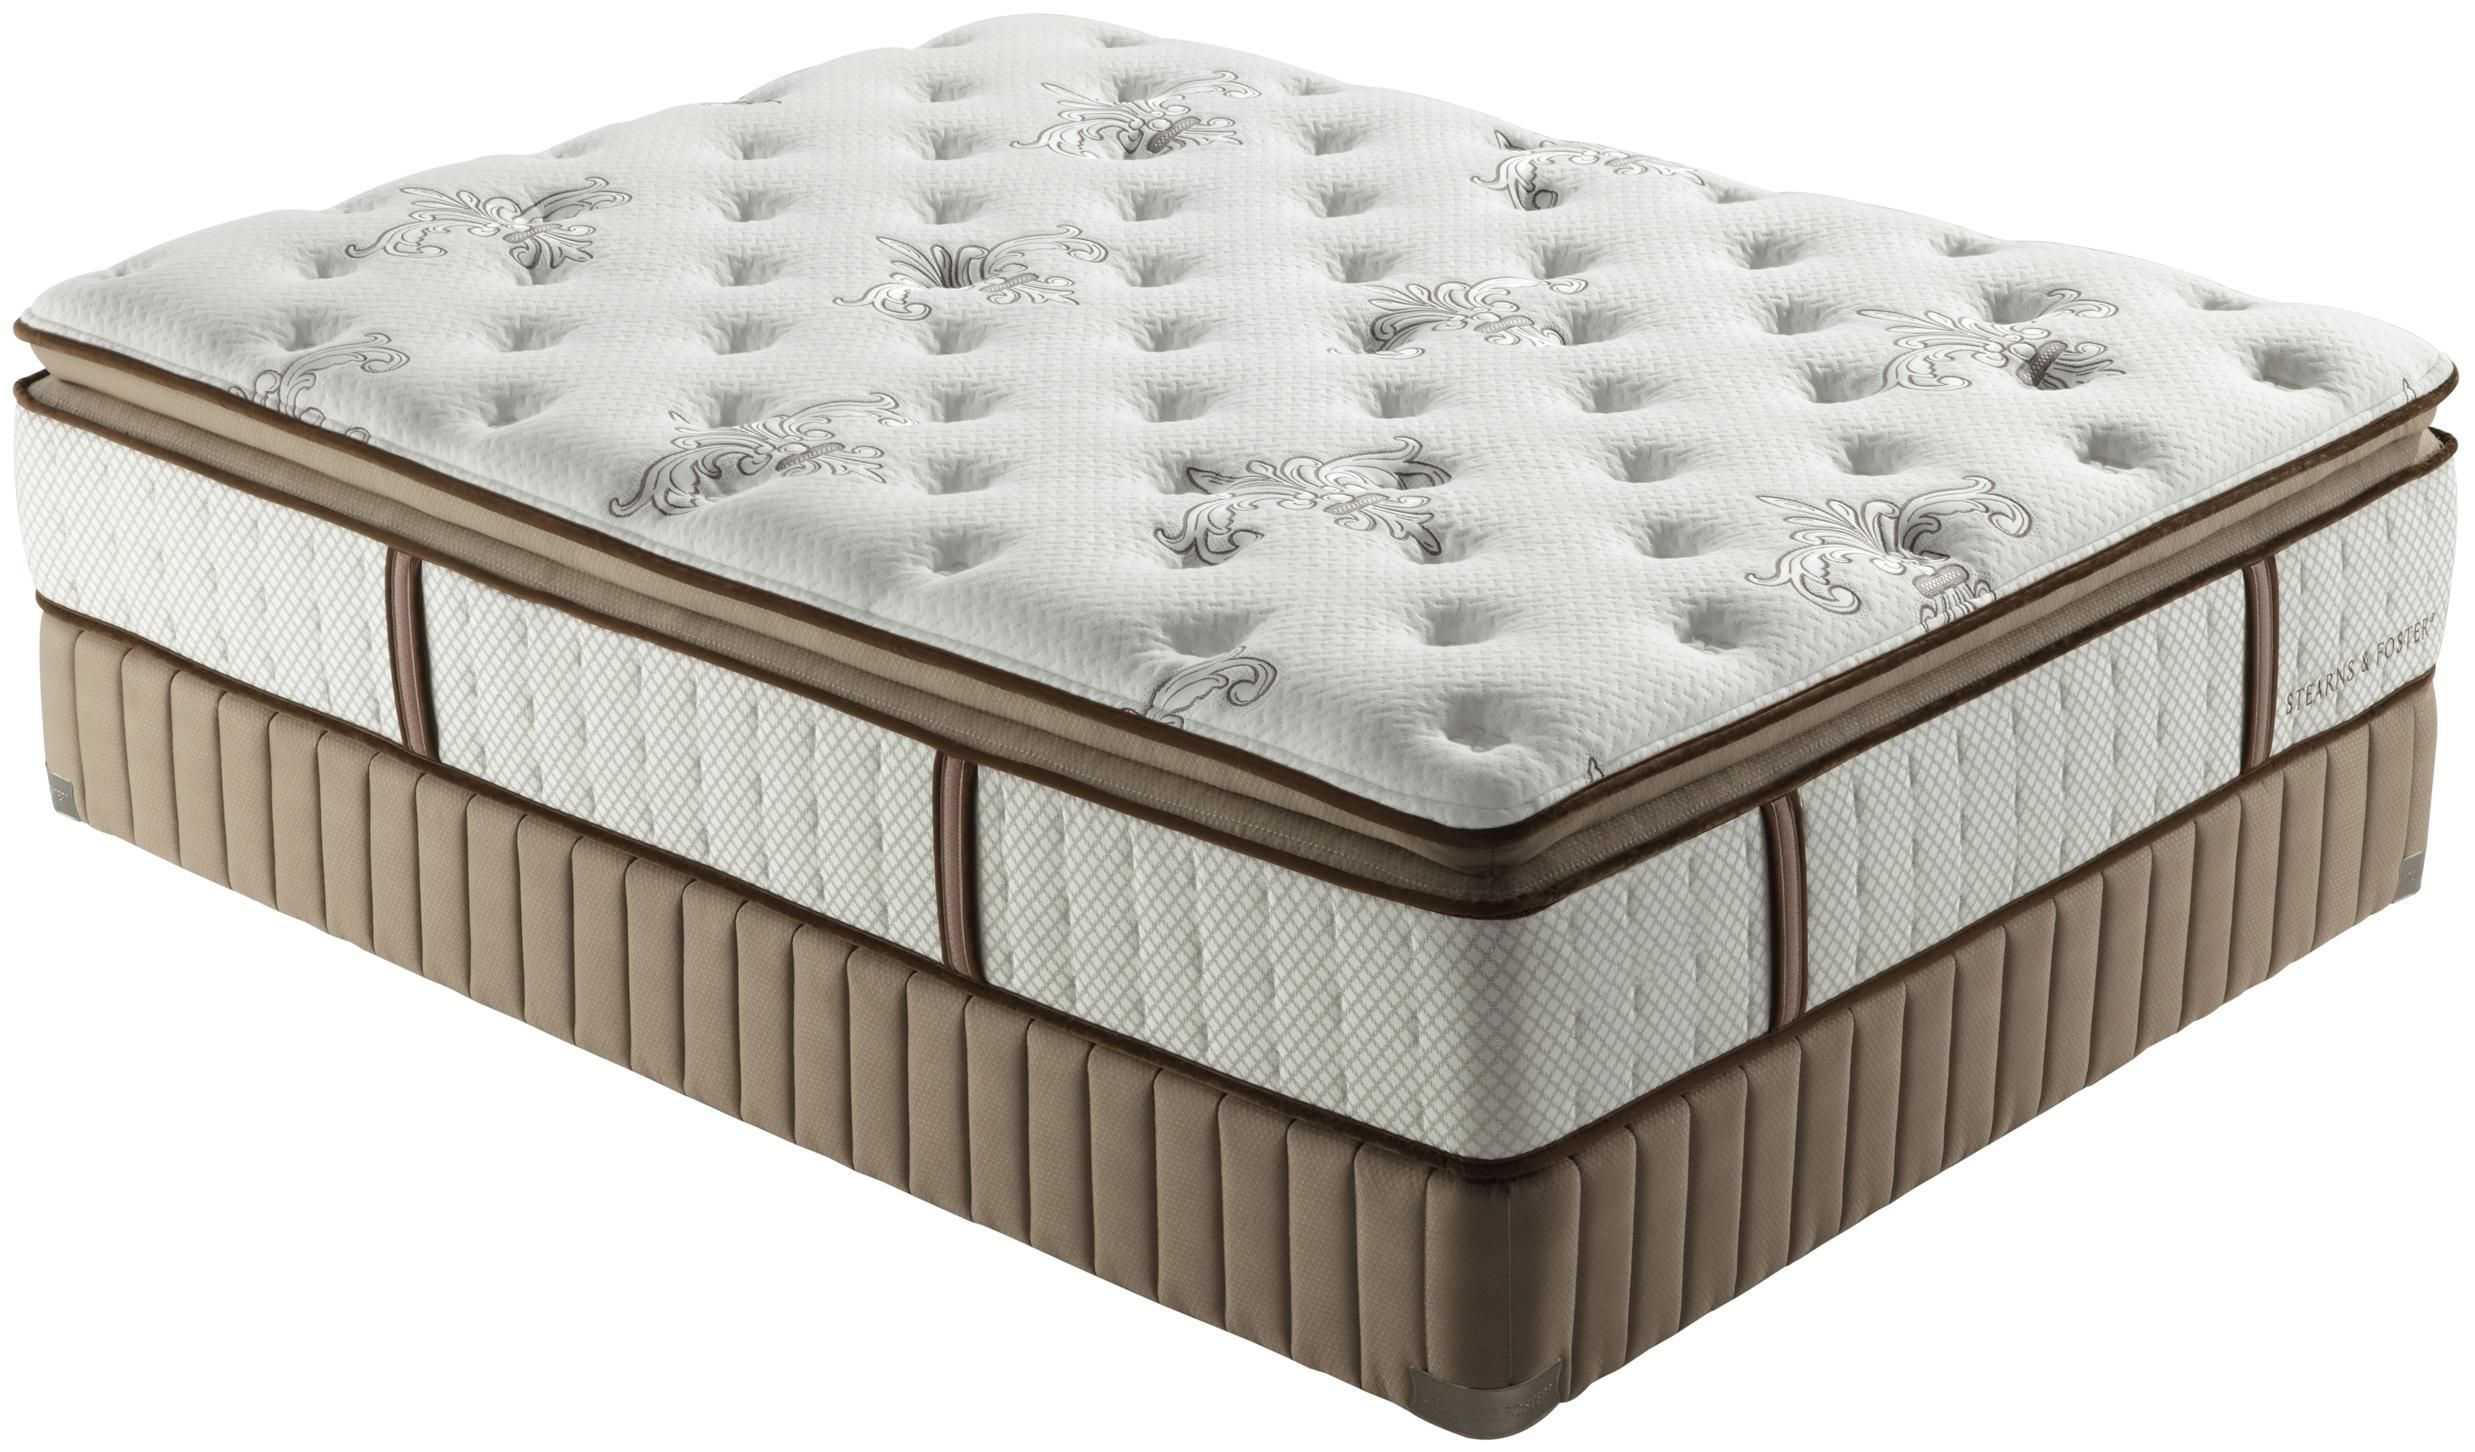 related a on of mattress ship matters pinterest pirate the firm bunk images flippable image unique ikea best made into bed